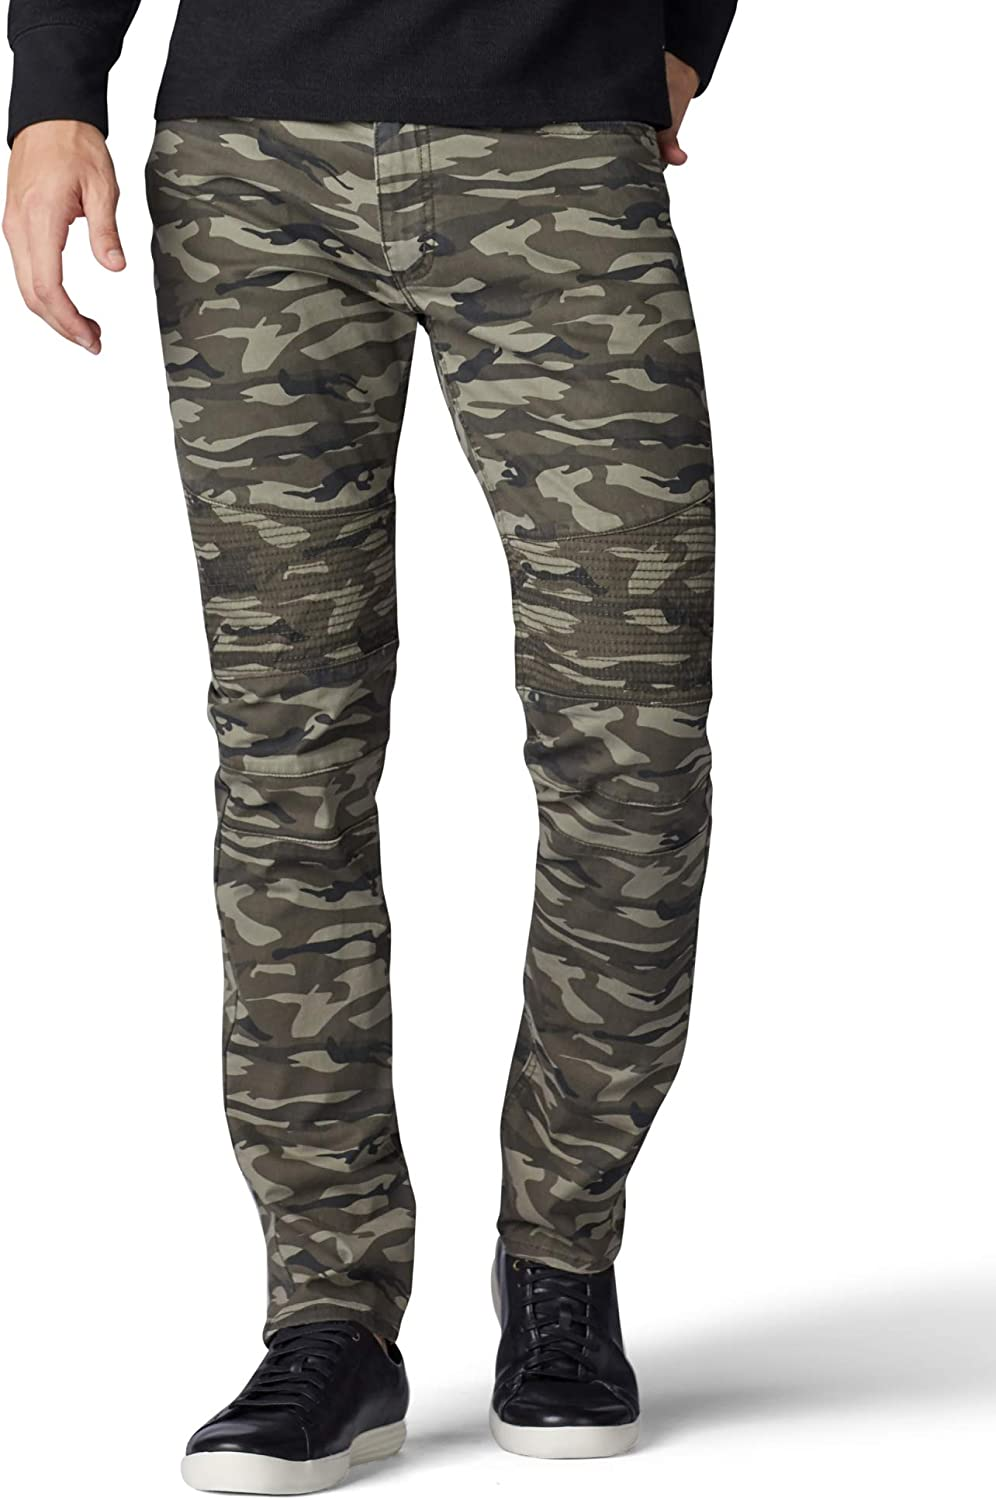 Lee Men's Skinny Jean Max Clearance SALE! Limited time! 64% OFF